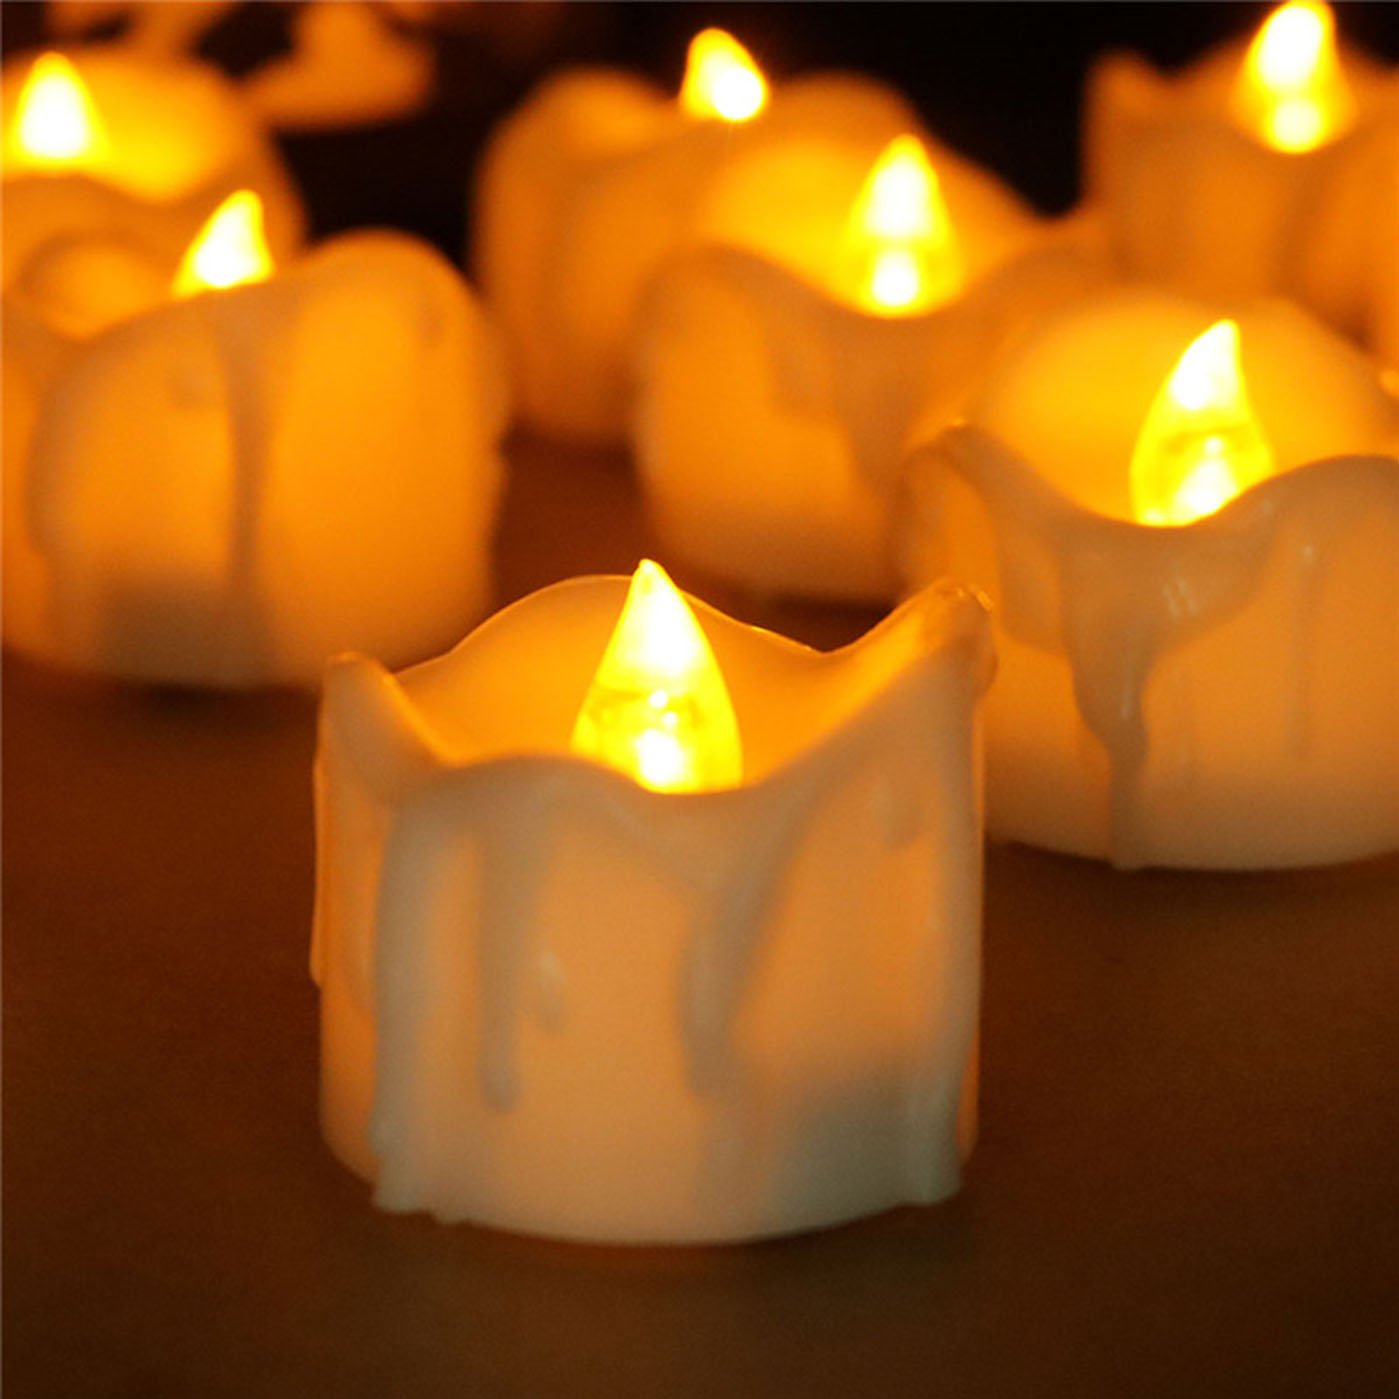 Dellukee Battery Operated Flameless LED Tea Lights with Timer 96pcs Yellow Flickering Little Decorative Candles Bulk for Halloween Christmas New Year Family Party Decoration